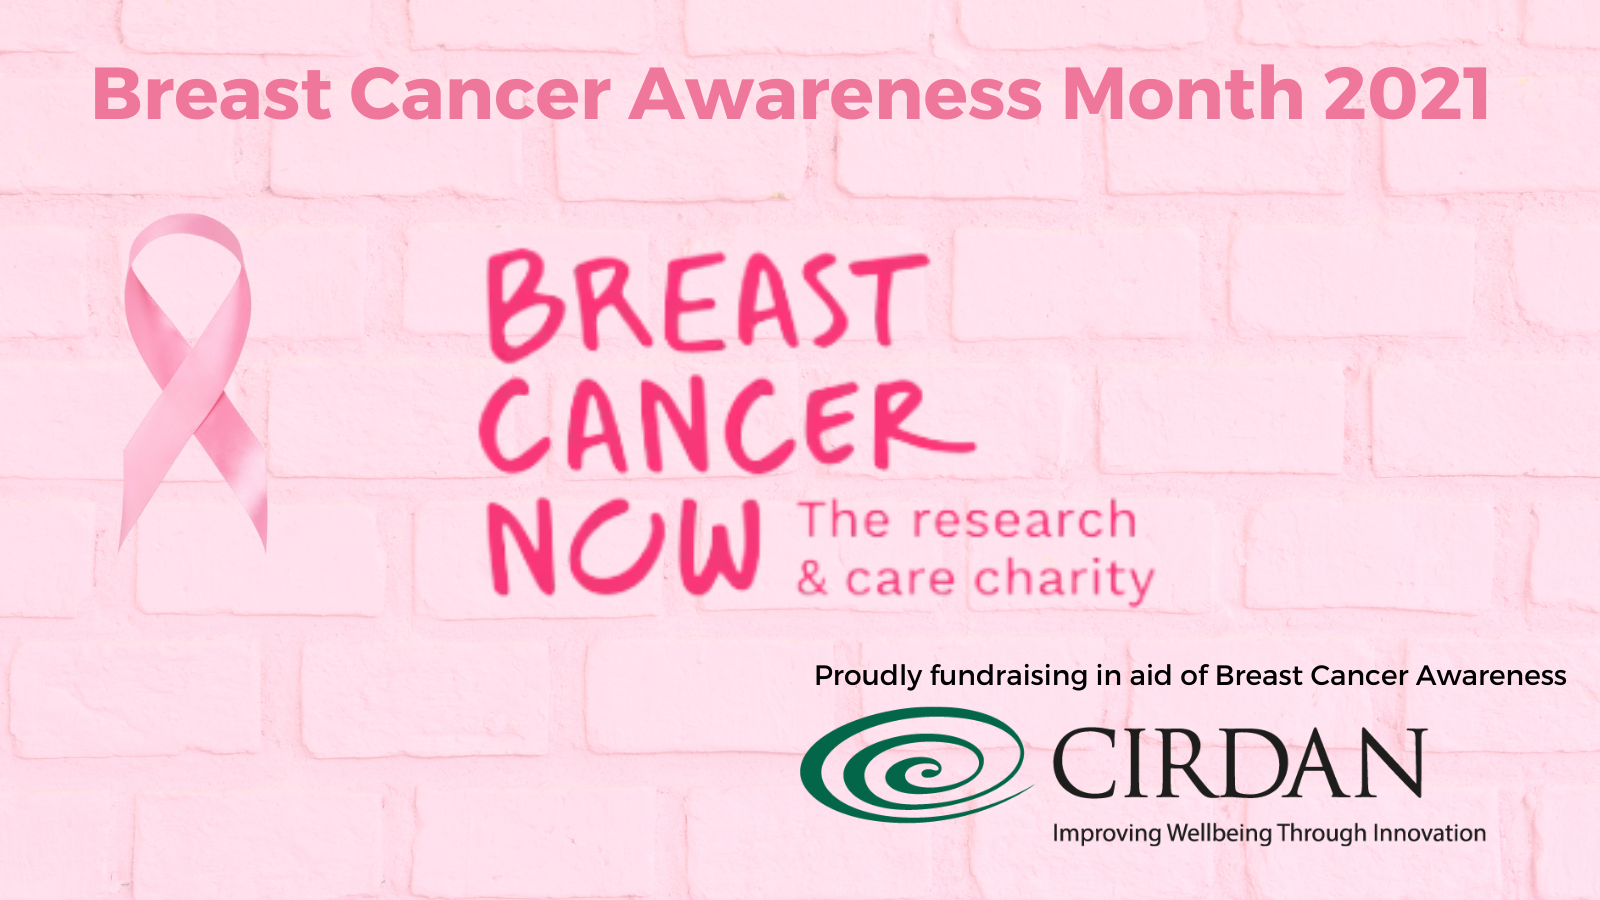 Cirdan proudly fundraising in aid of Breast Cancer Awareness